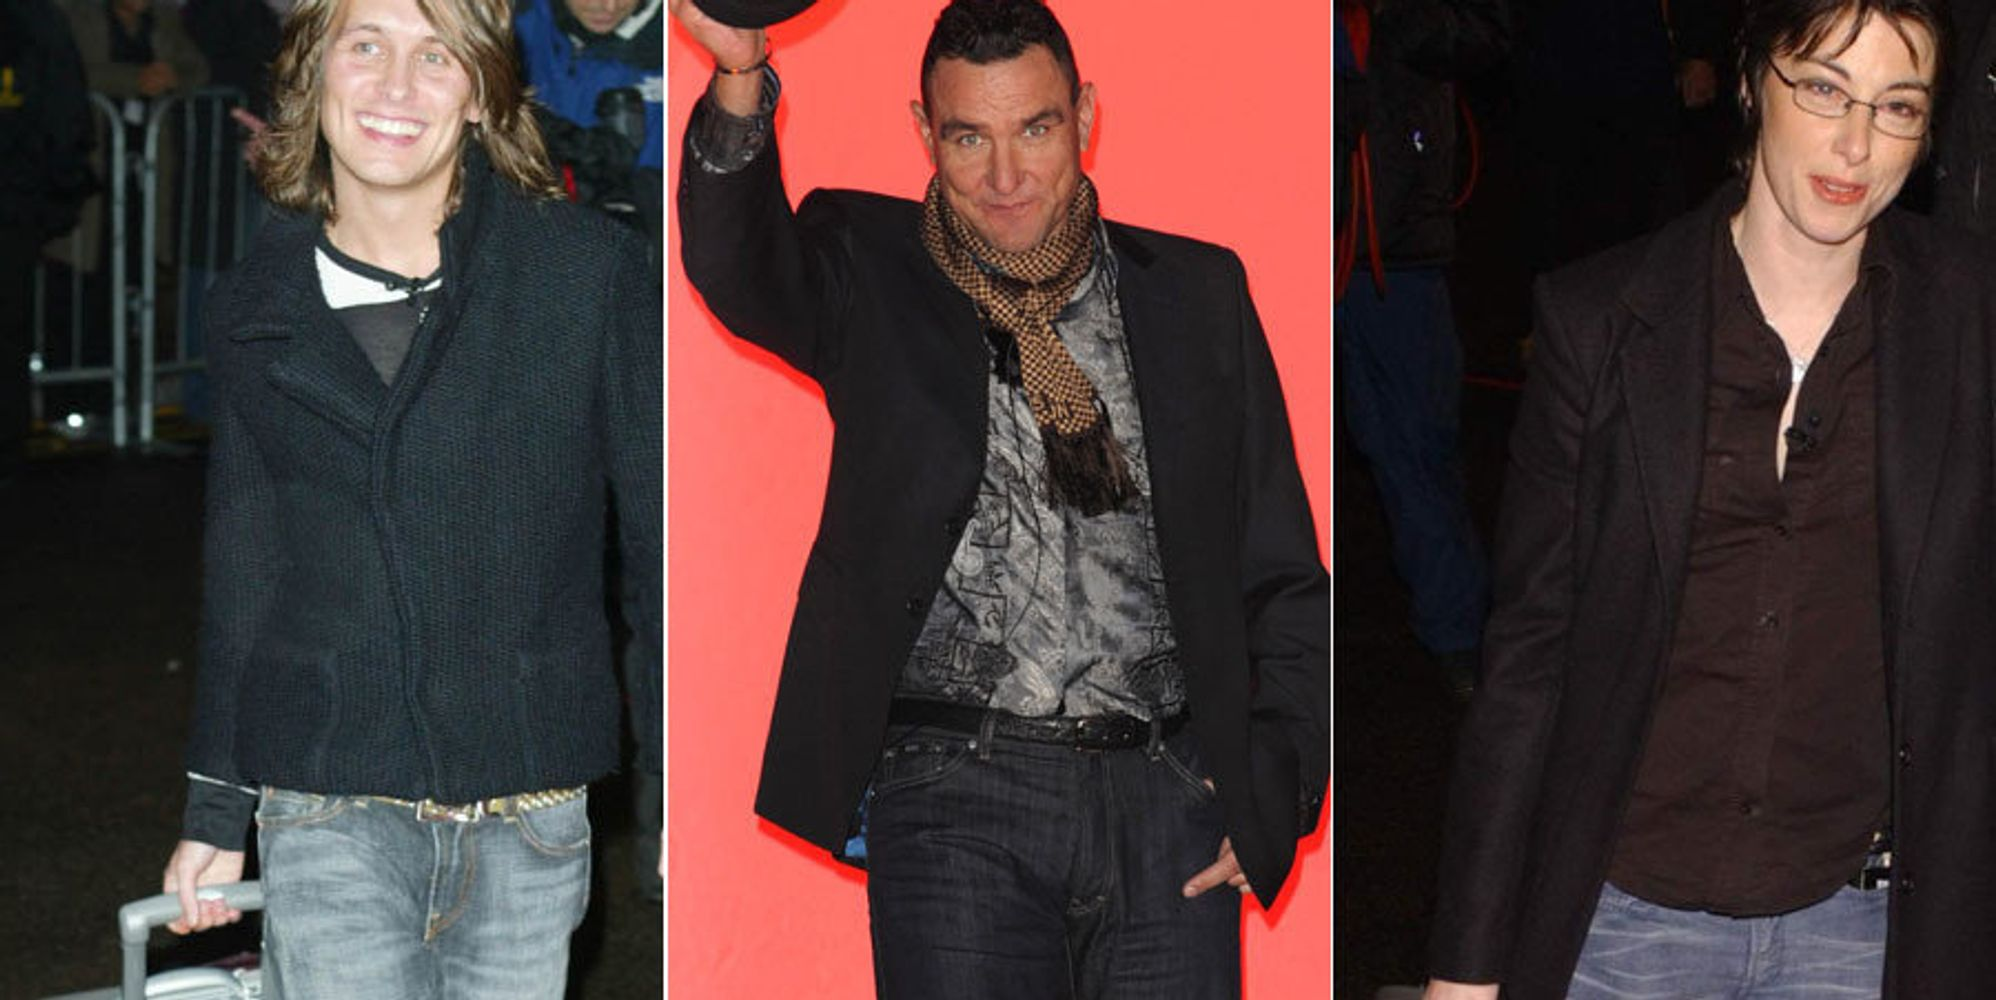 The U.S. 'Celebrity Big Brother' Cast Is Stacked With ...